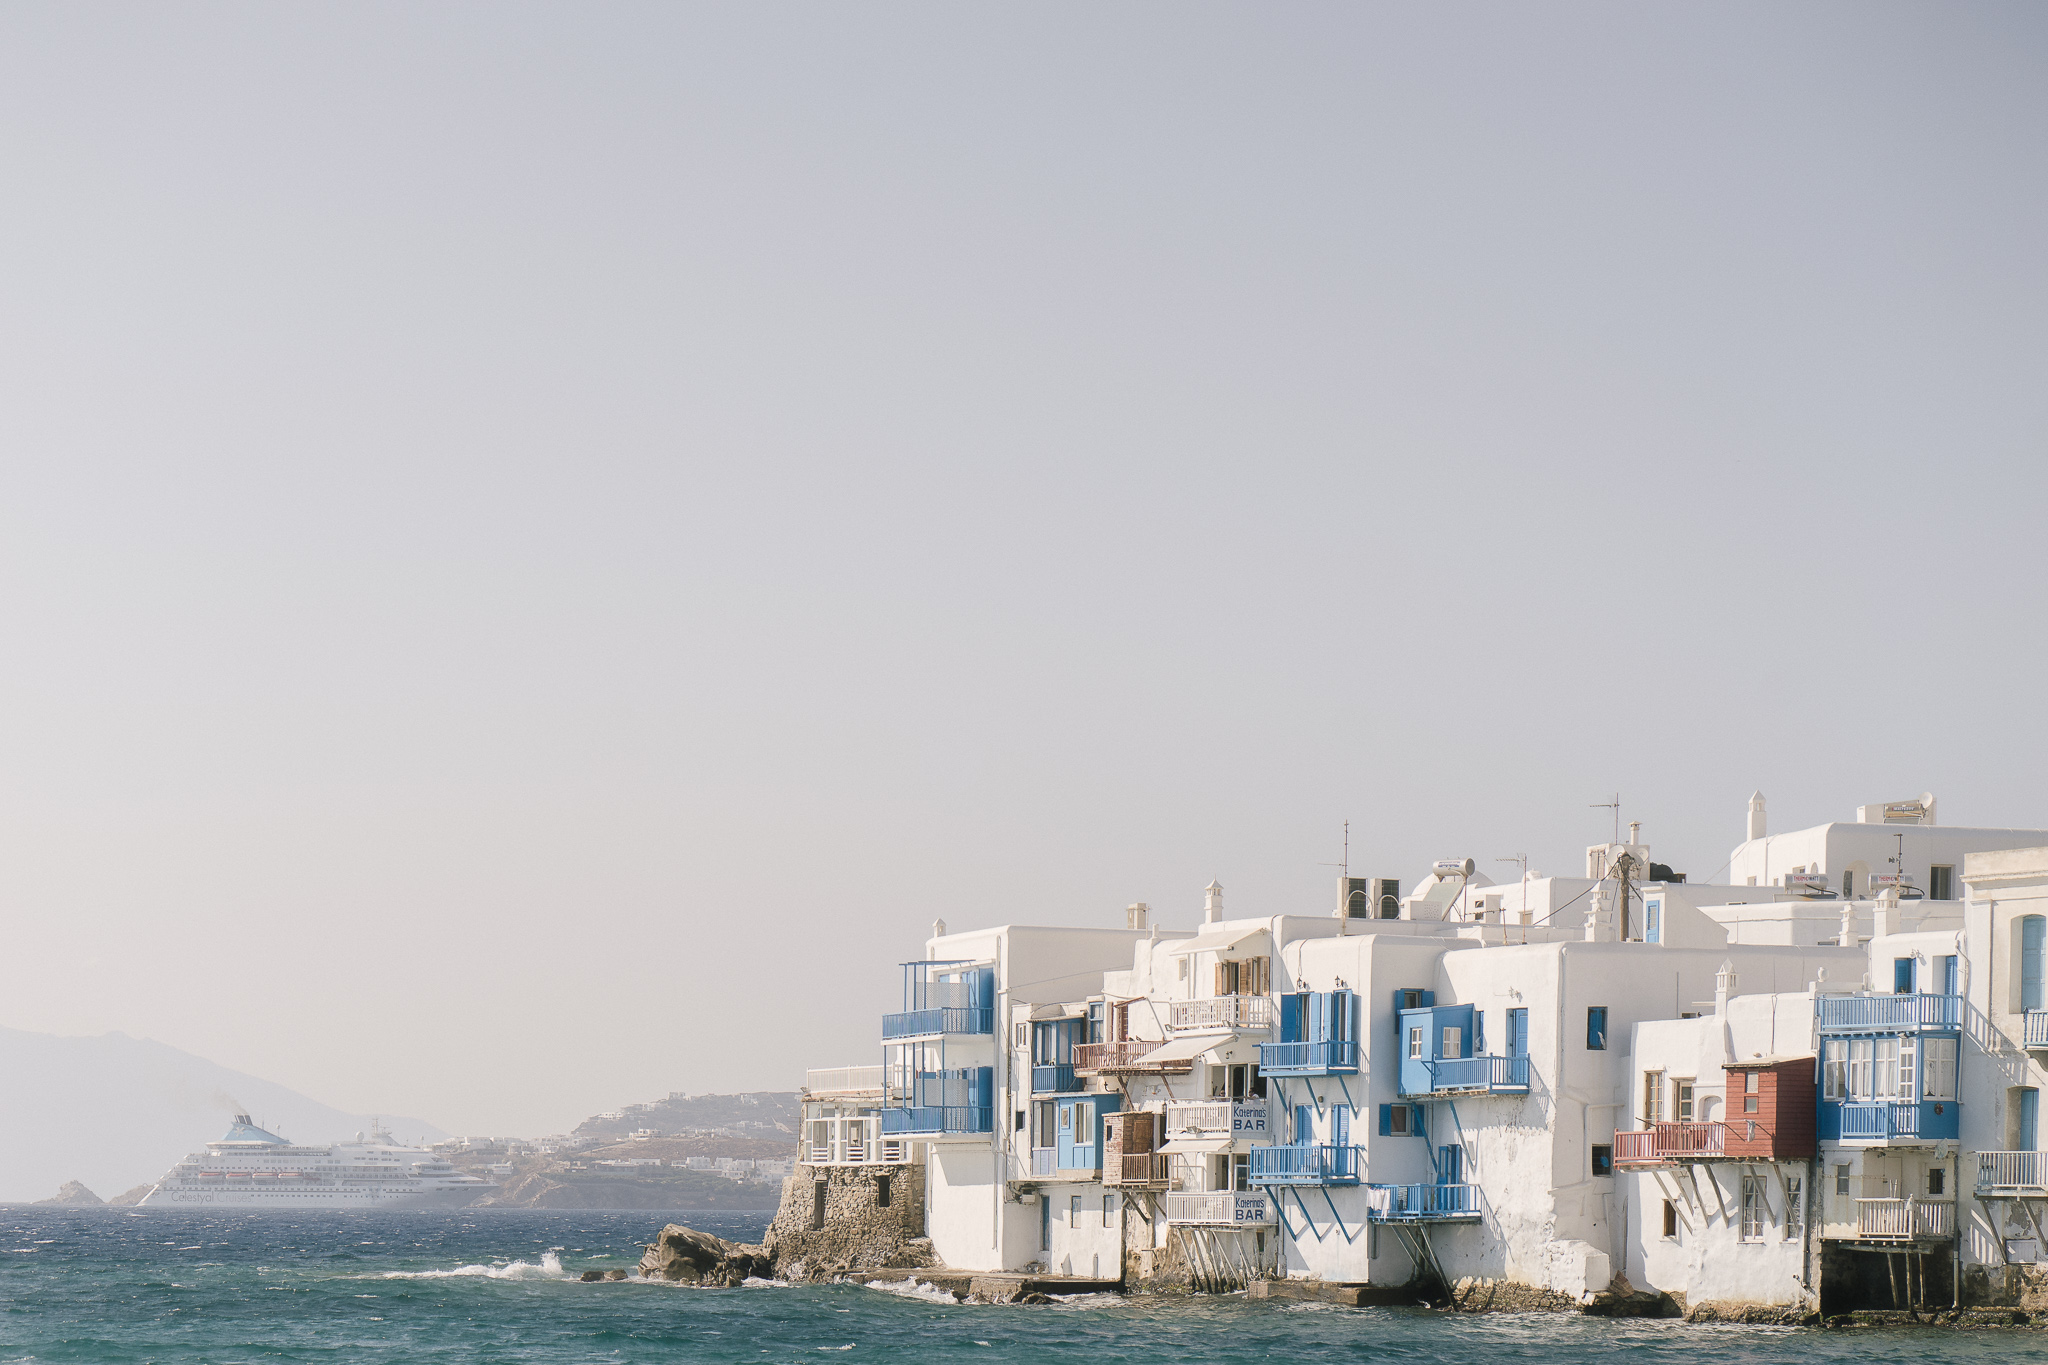 Mykonos-Greece-19.jpg